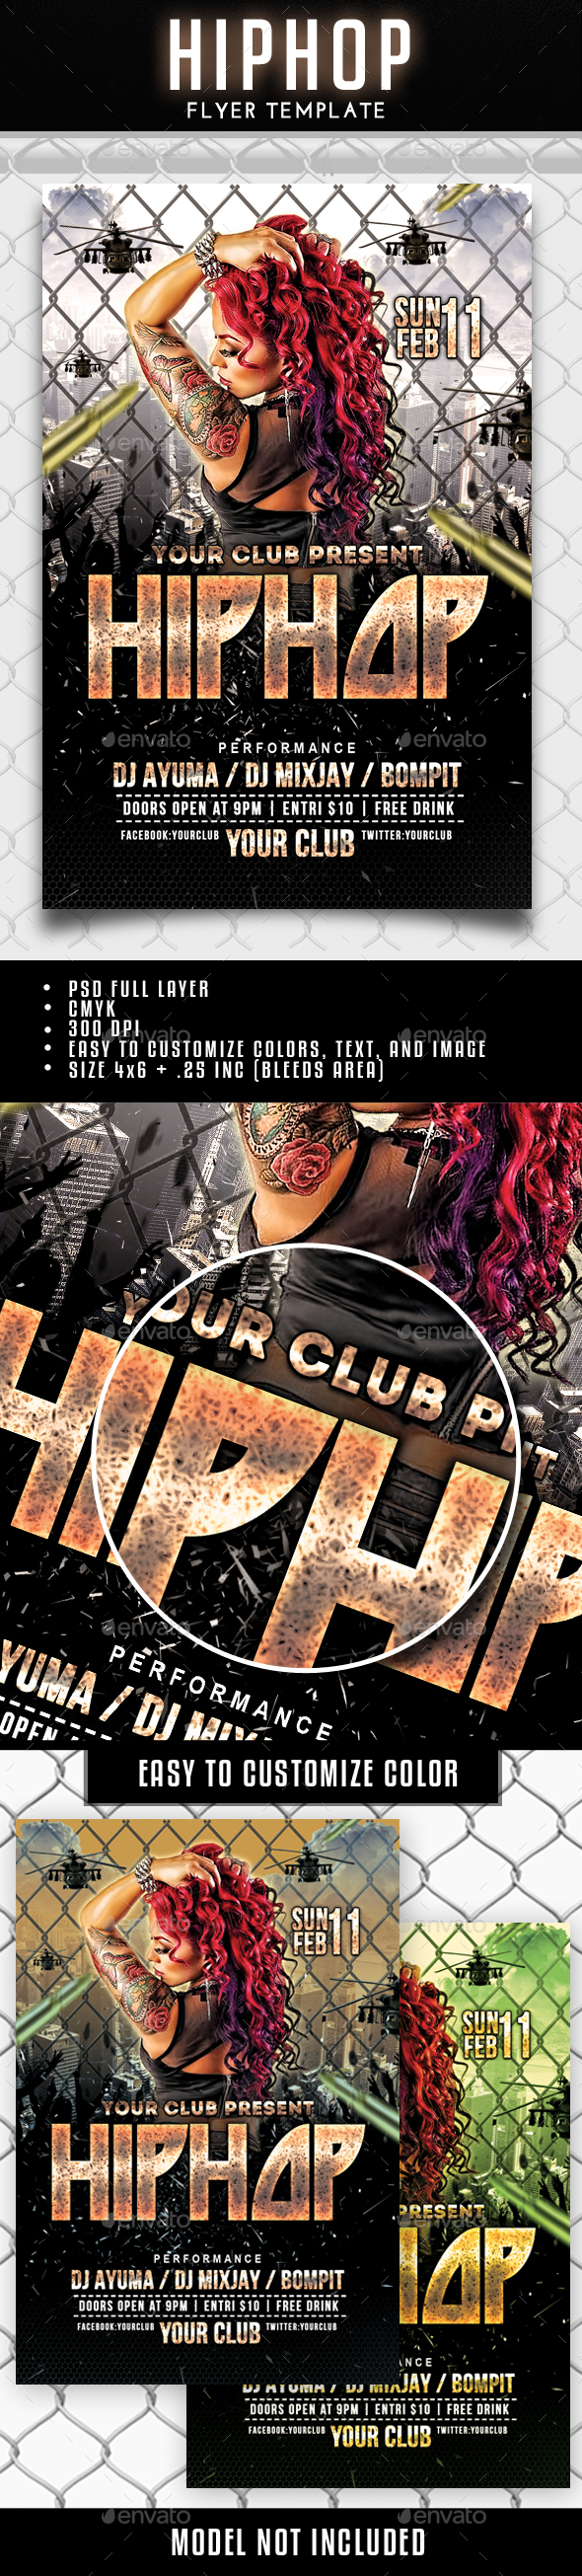 Hip Hop Flyer - Clubs & Parties Events